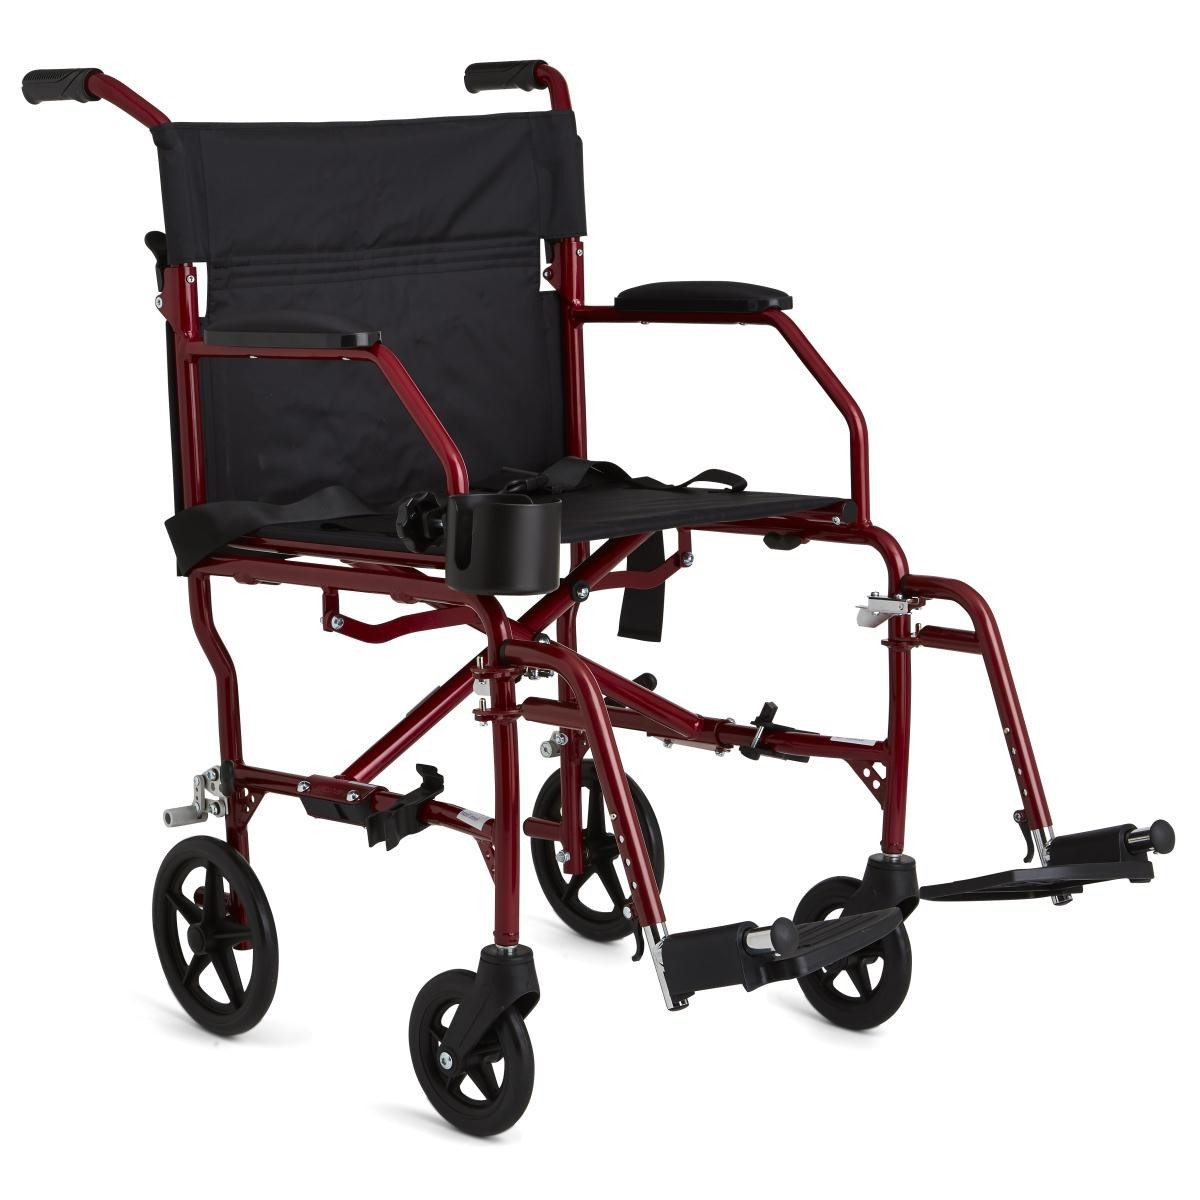 Red Medline Ultralight Transport Wheelchair with 4 wheels and 2 footrests